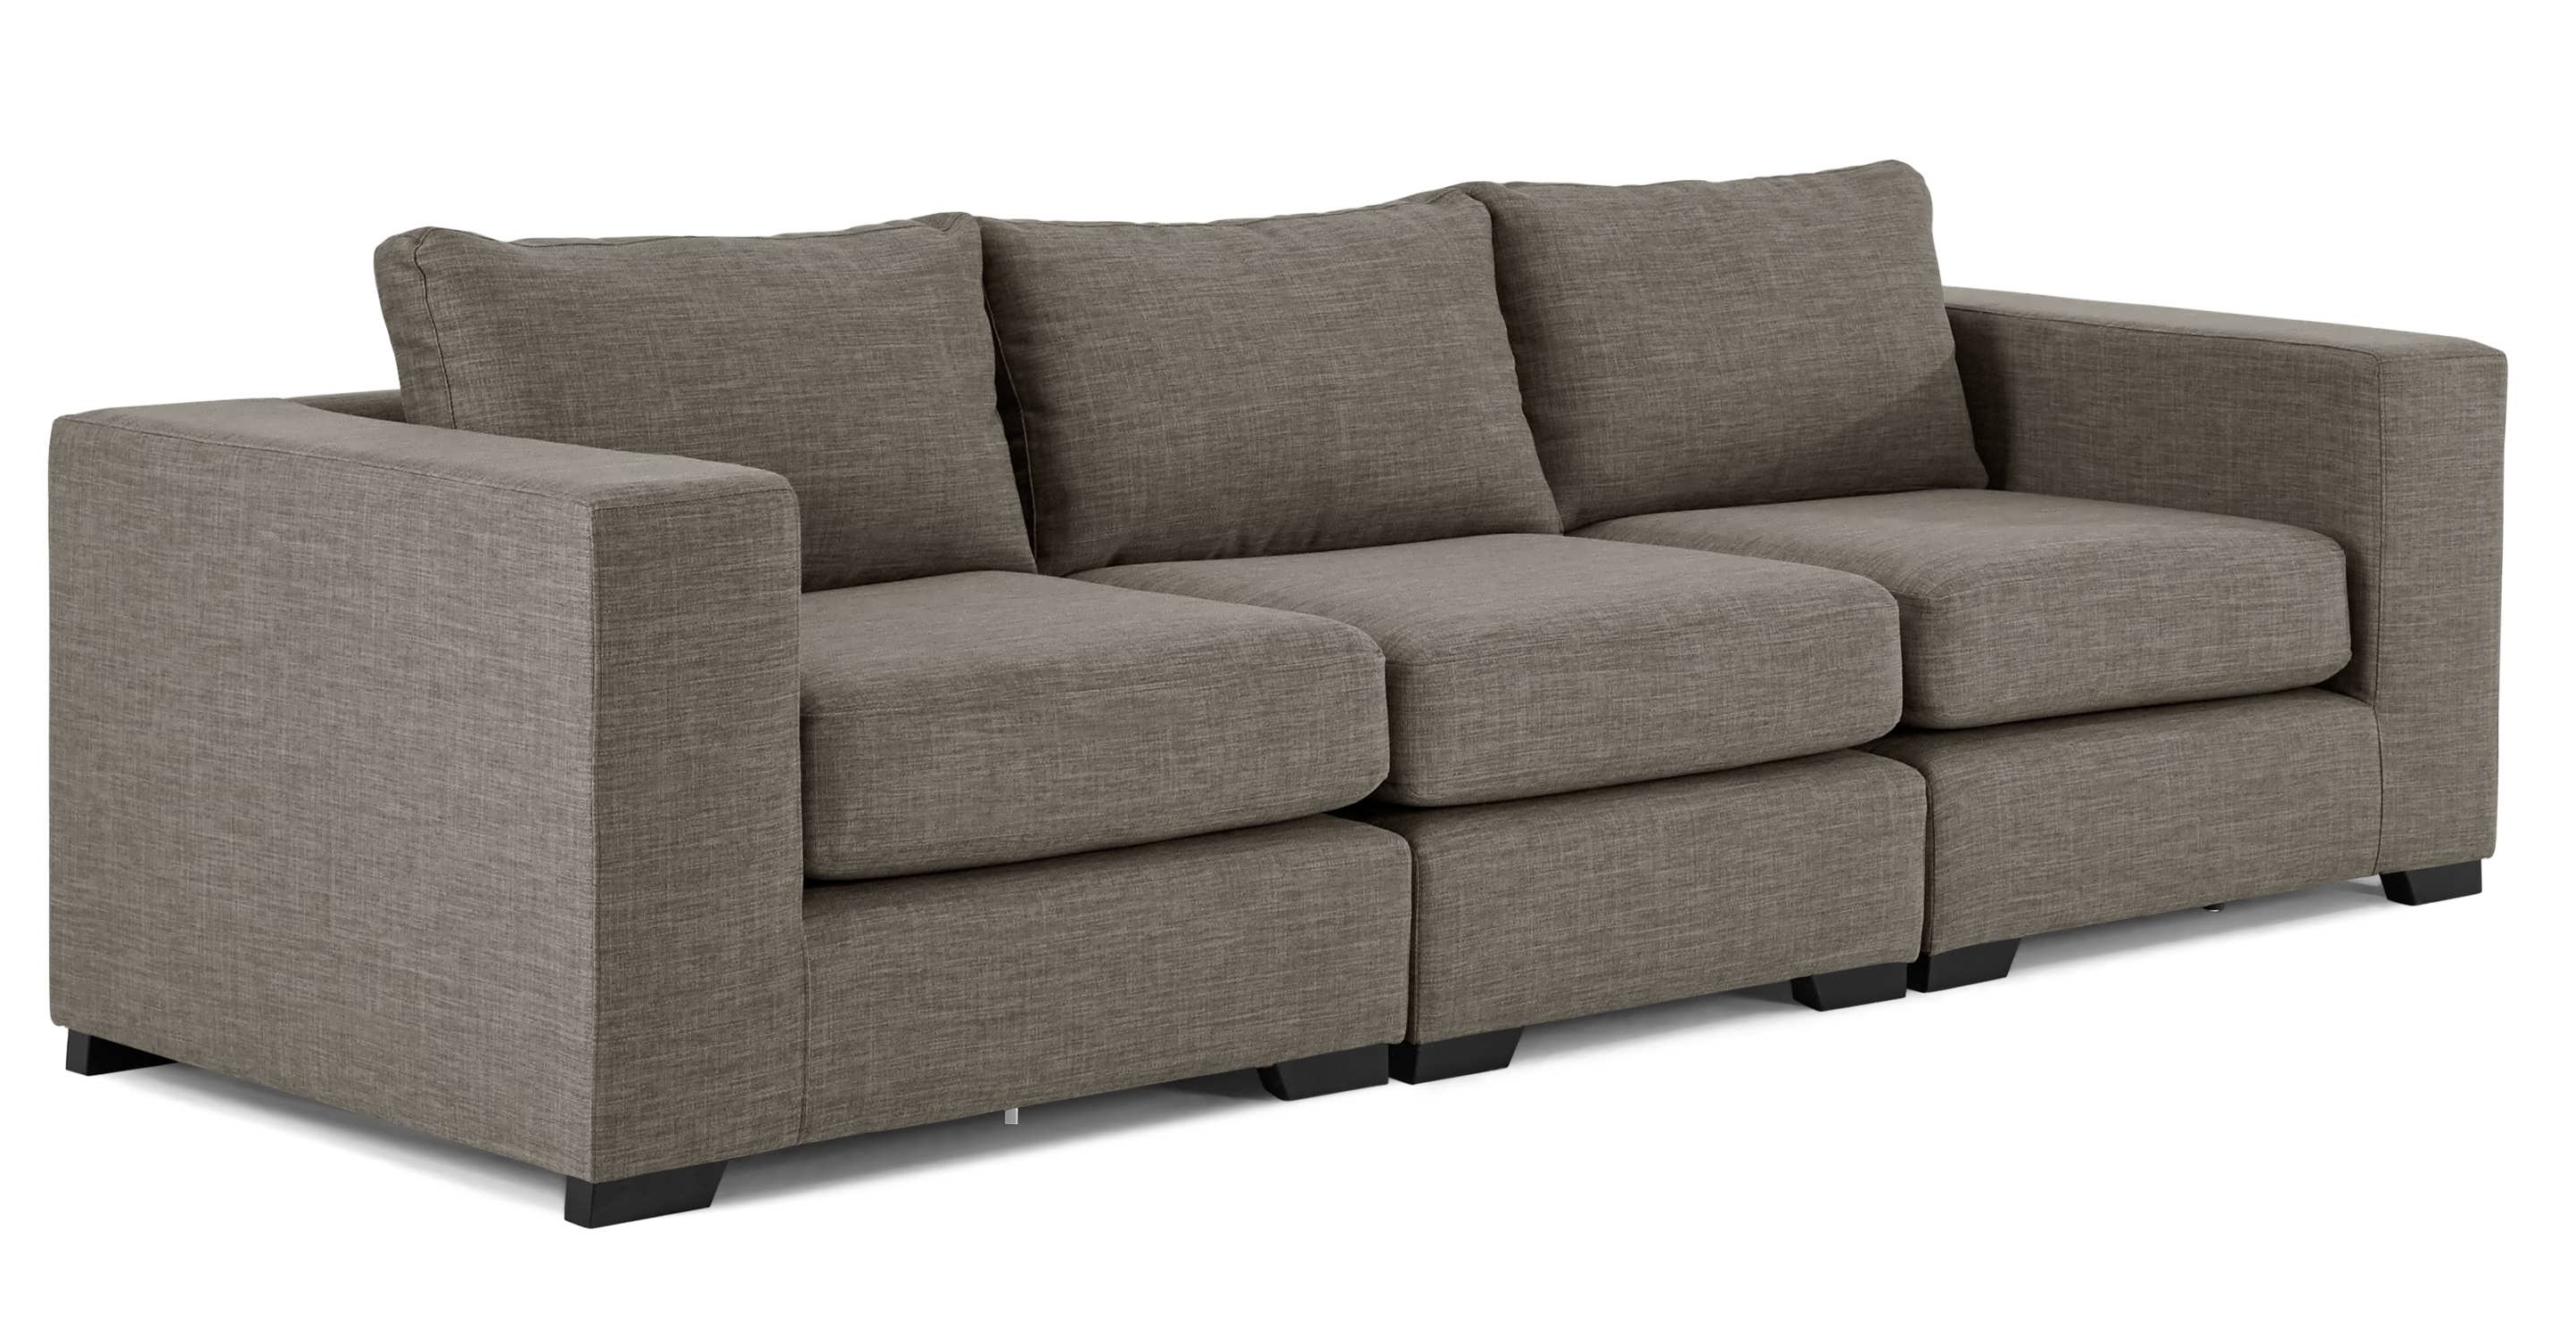 Sofa : Sectionals For Sale Chaise Sofa Leather Sectional Sofa Grey For Widely Used Chaise Sofa Sectionals (View 12 of 15)